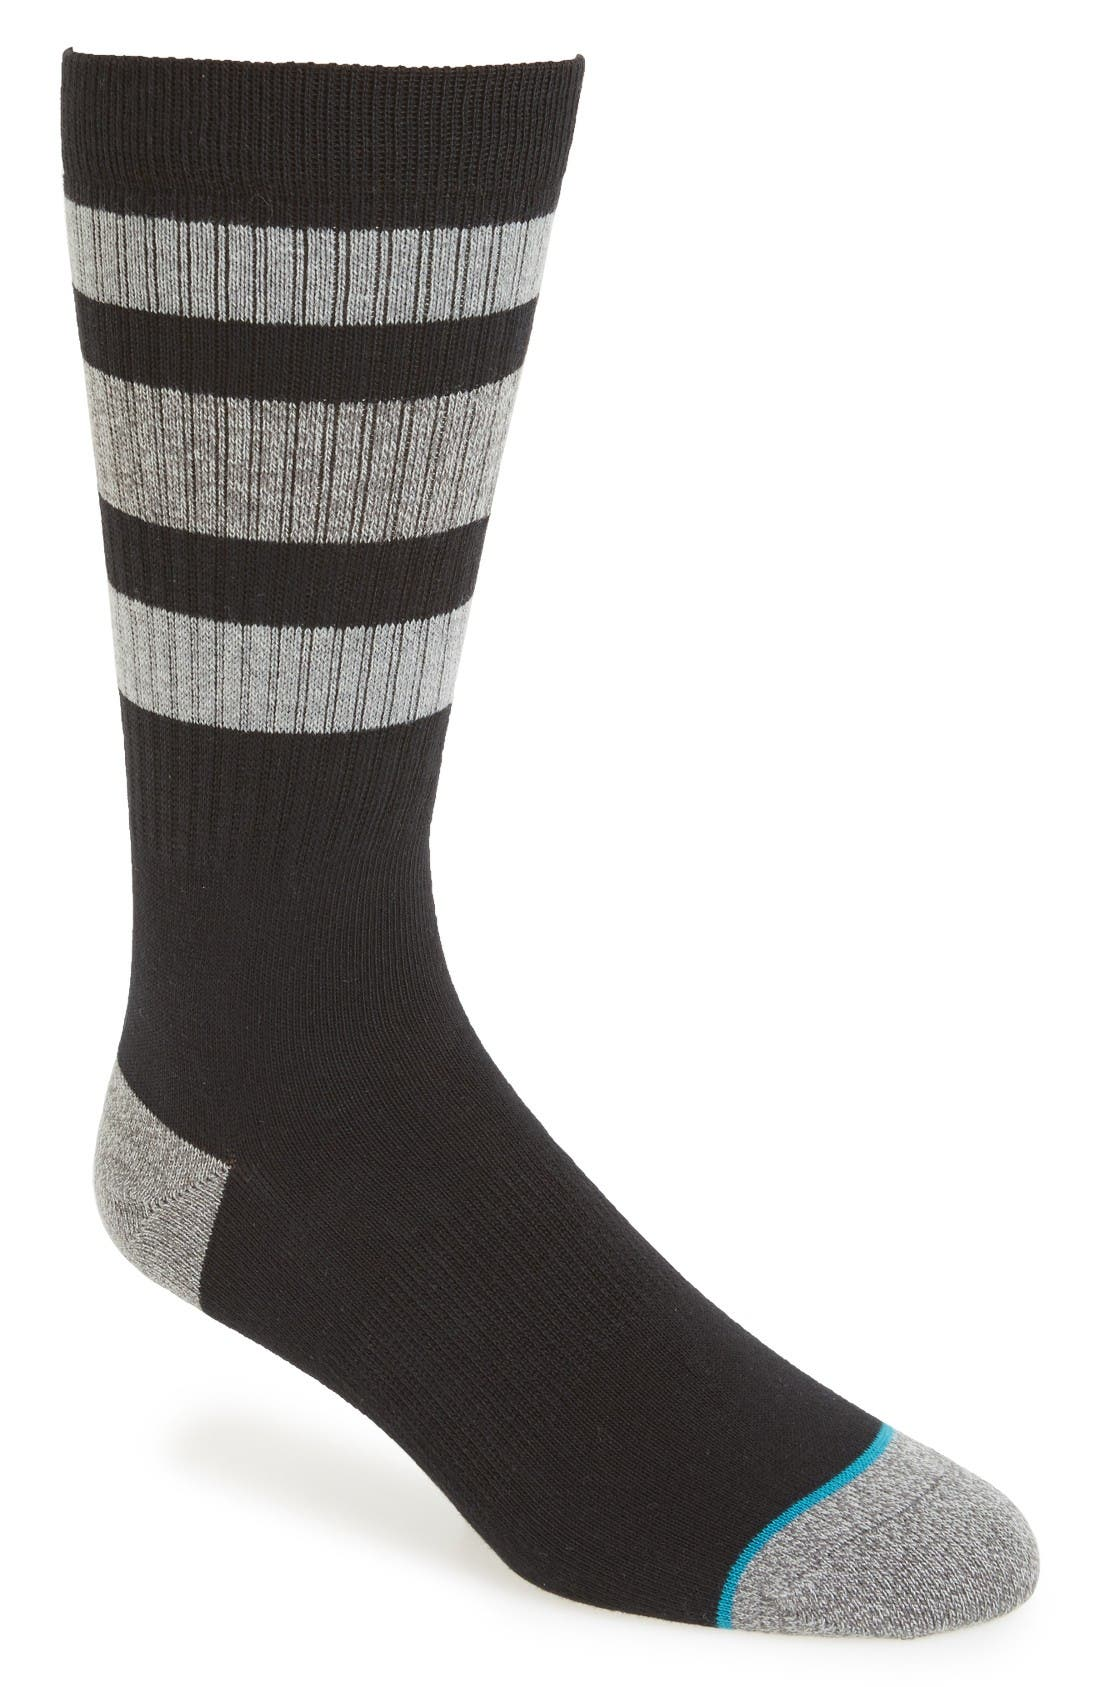 Stance Stripe Crew Socks